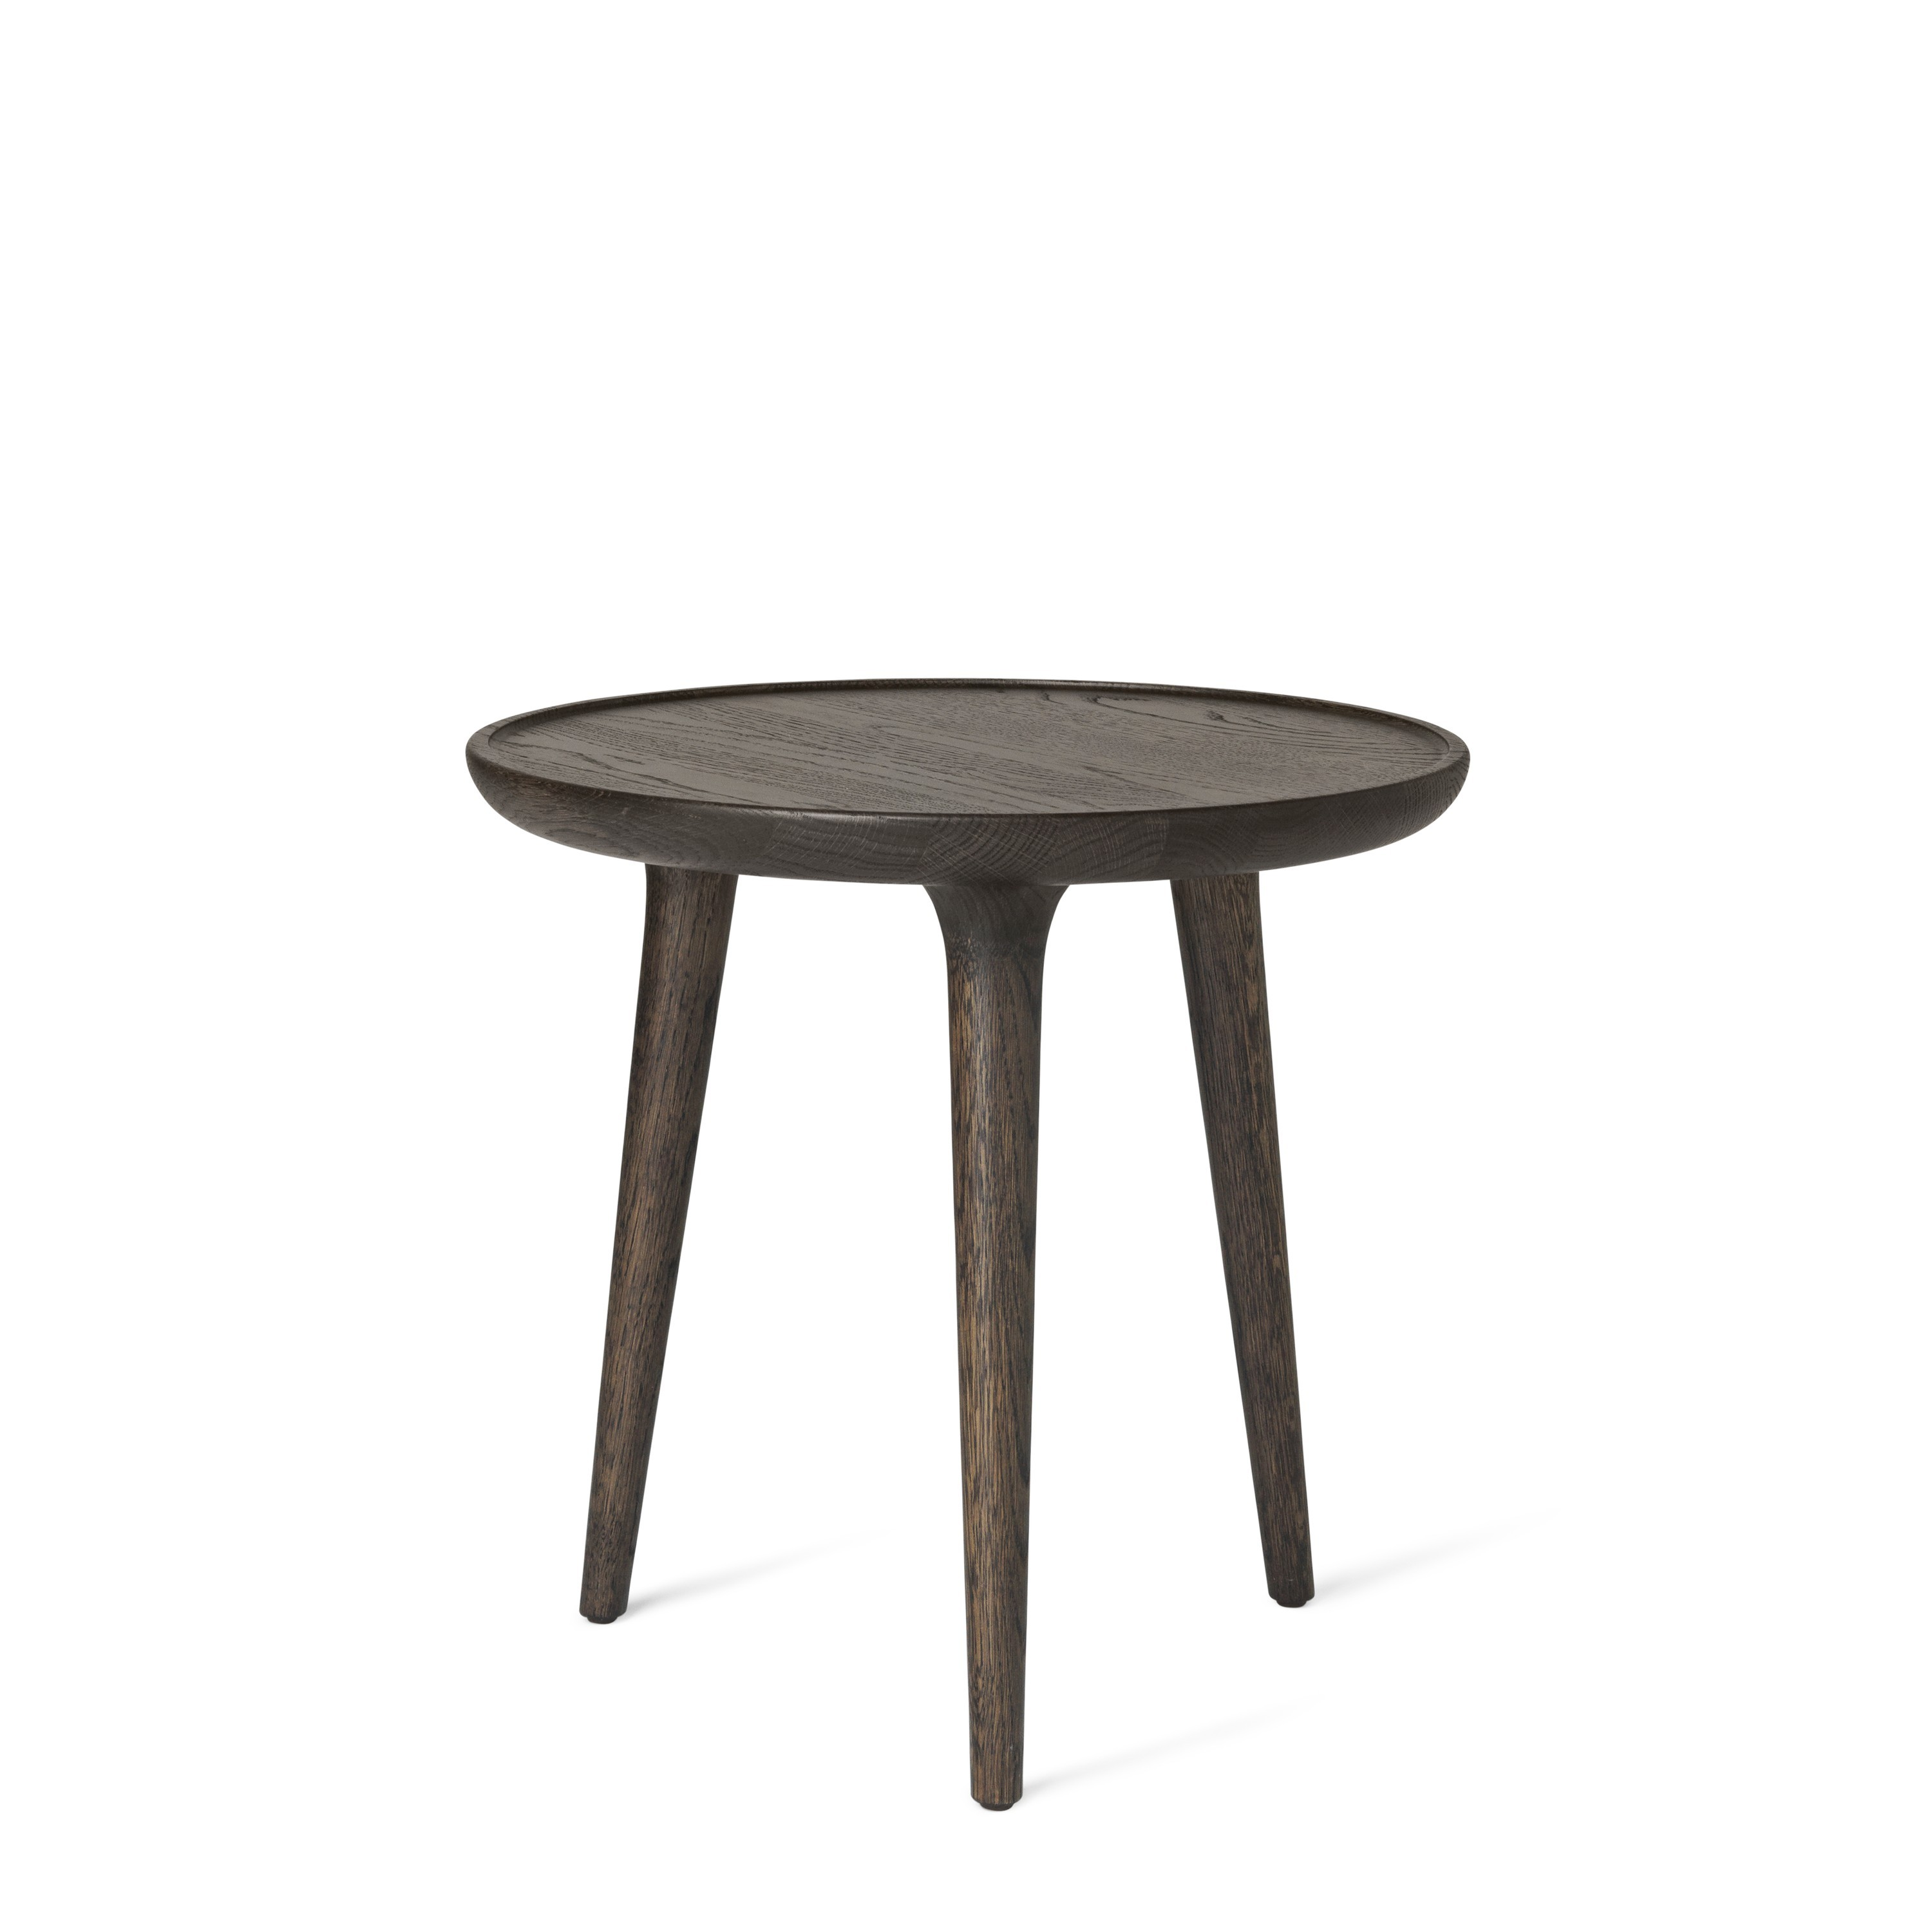 mater accent side table sirka grey oak coffeetable small outdoor battery lamps ginger jar green porcelain oval tablecloth sizes extra best home office desk console wood top ideas